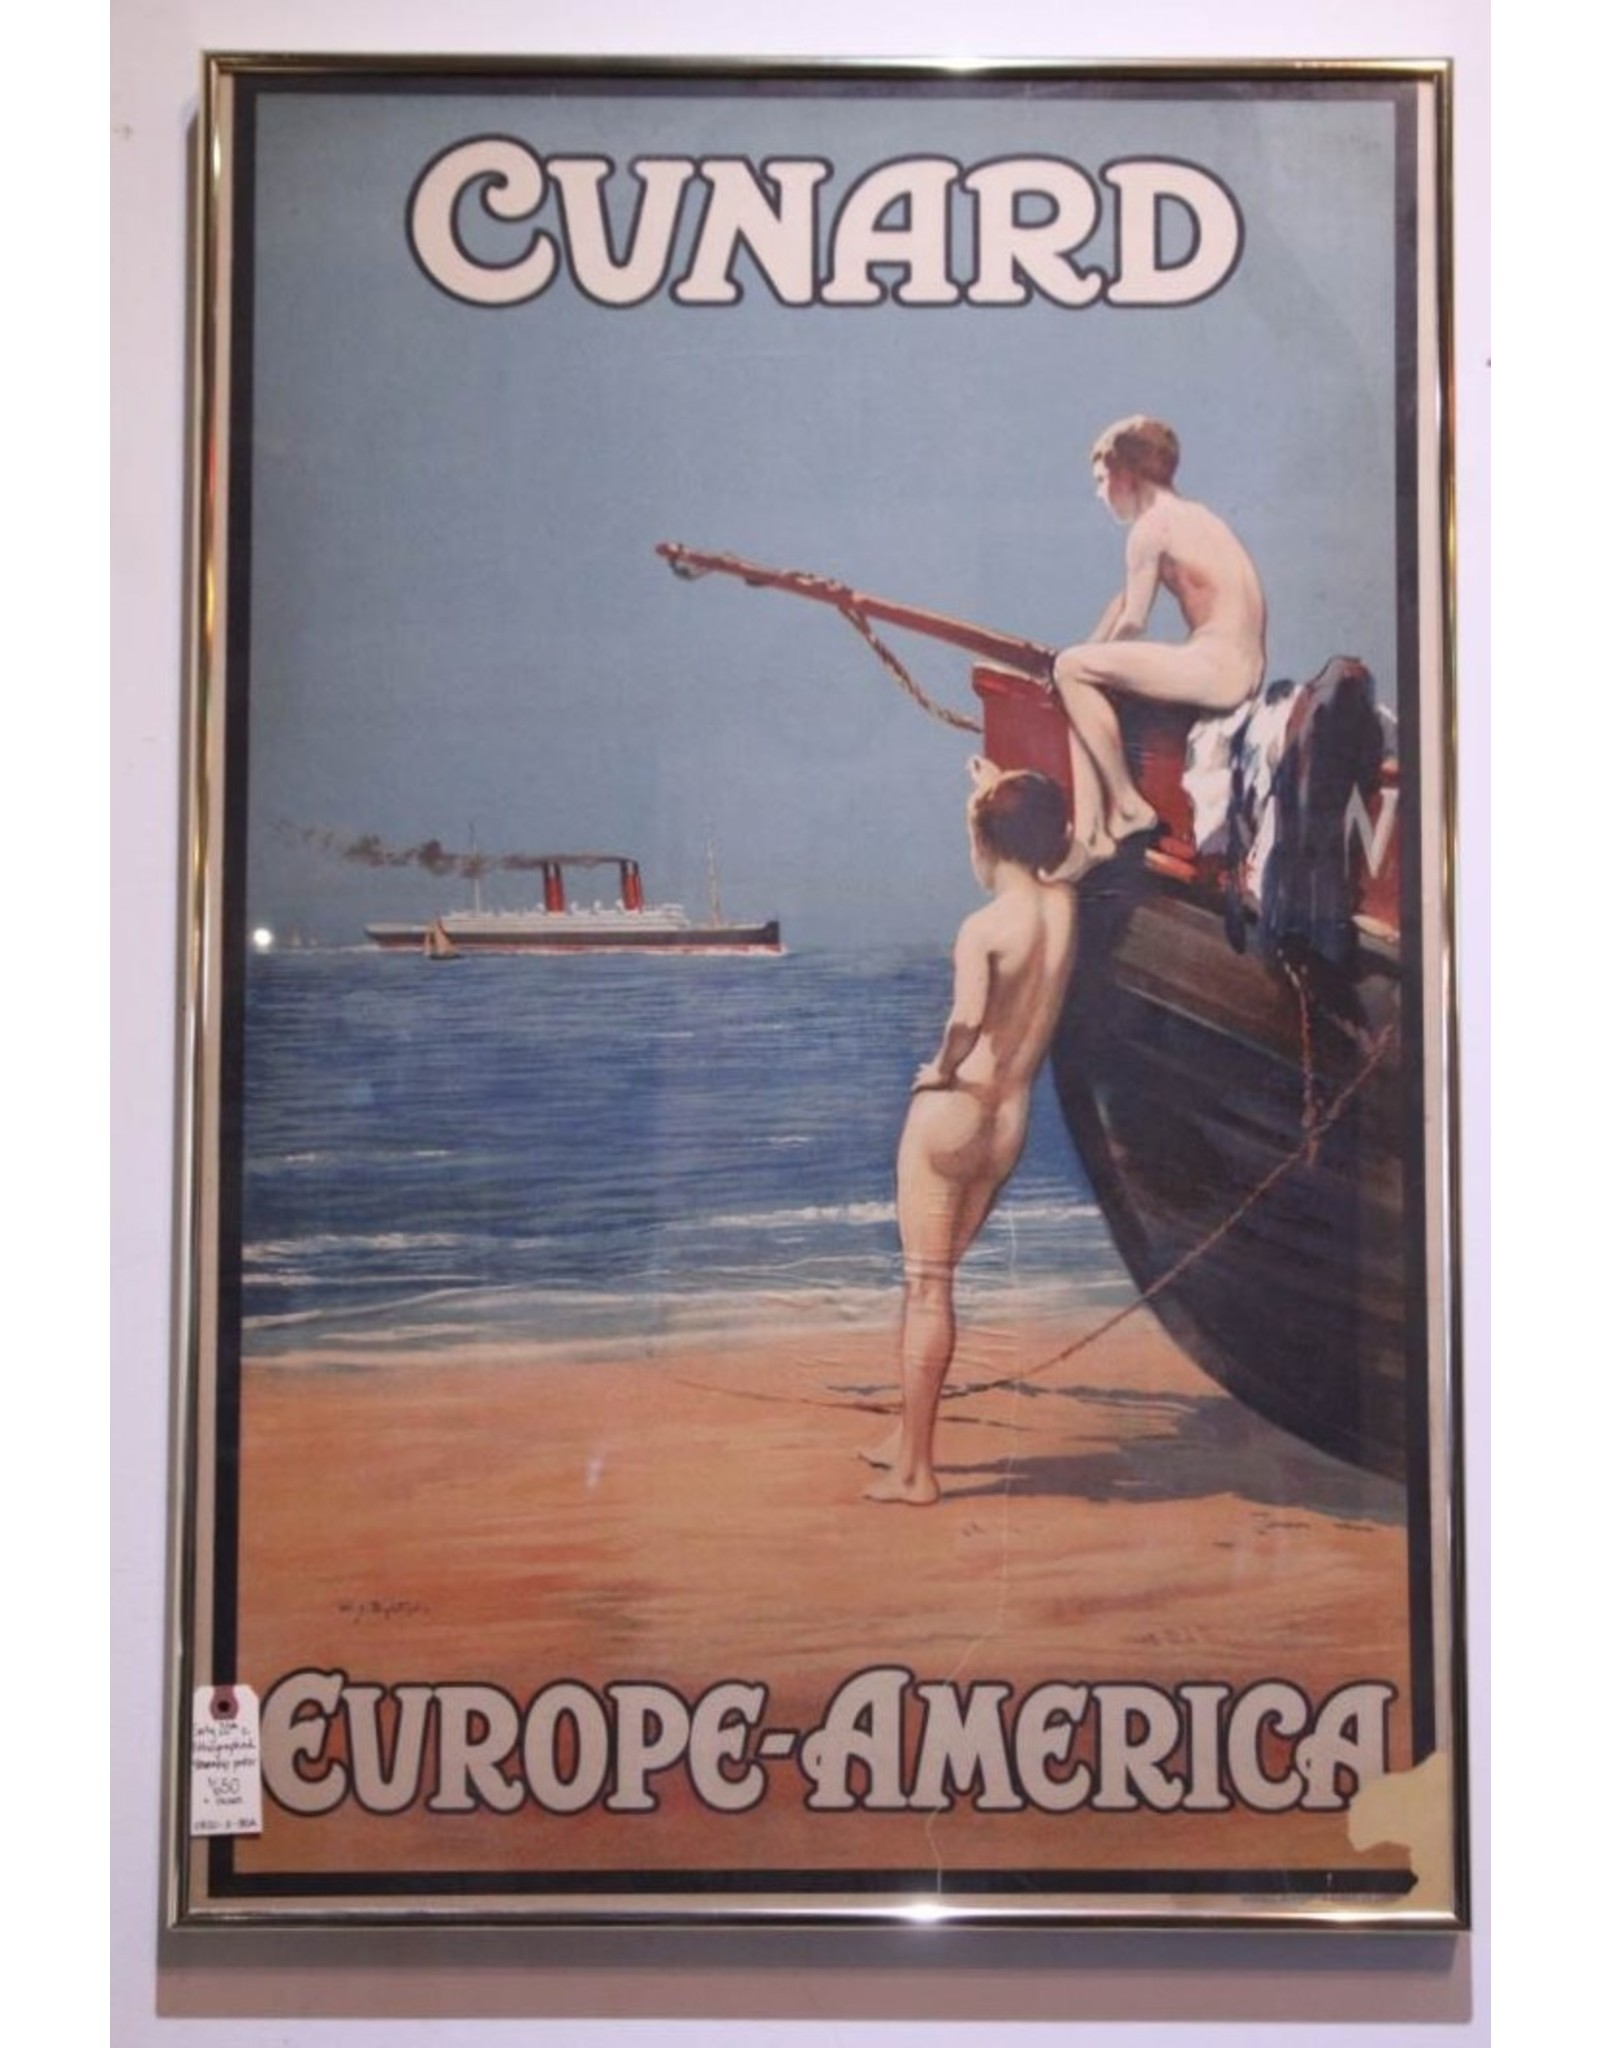 Poster - original framed lithographed poster Cunard Europe-America